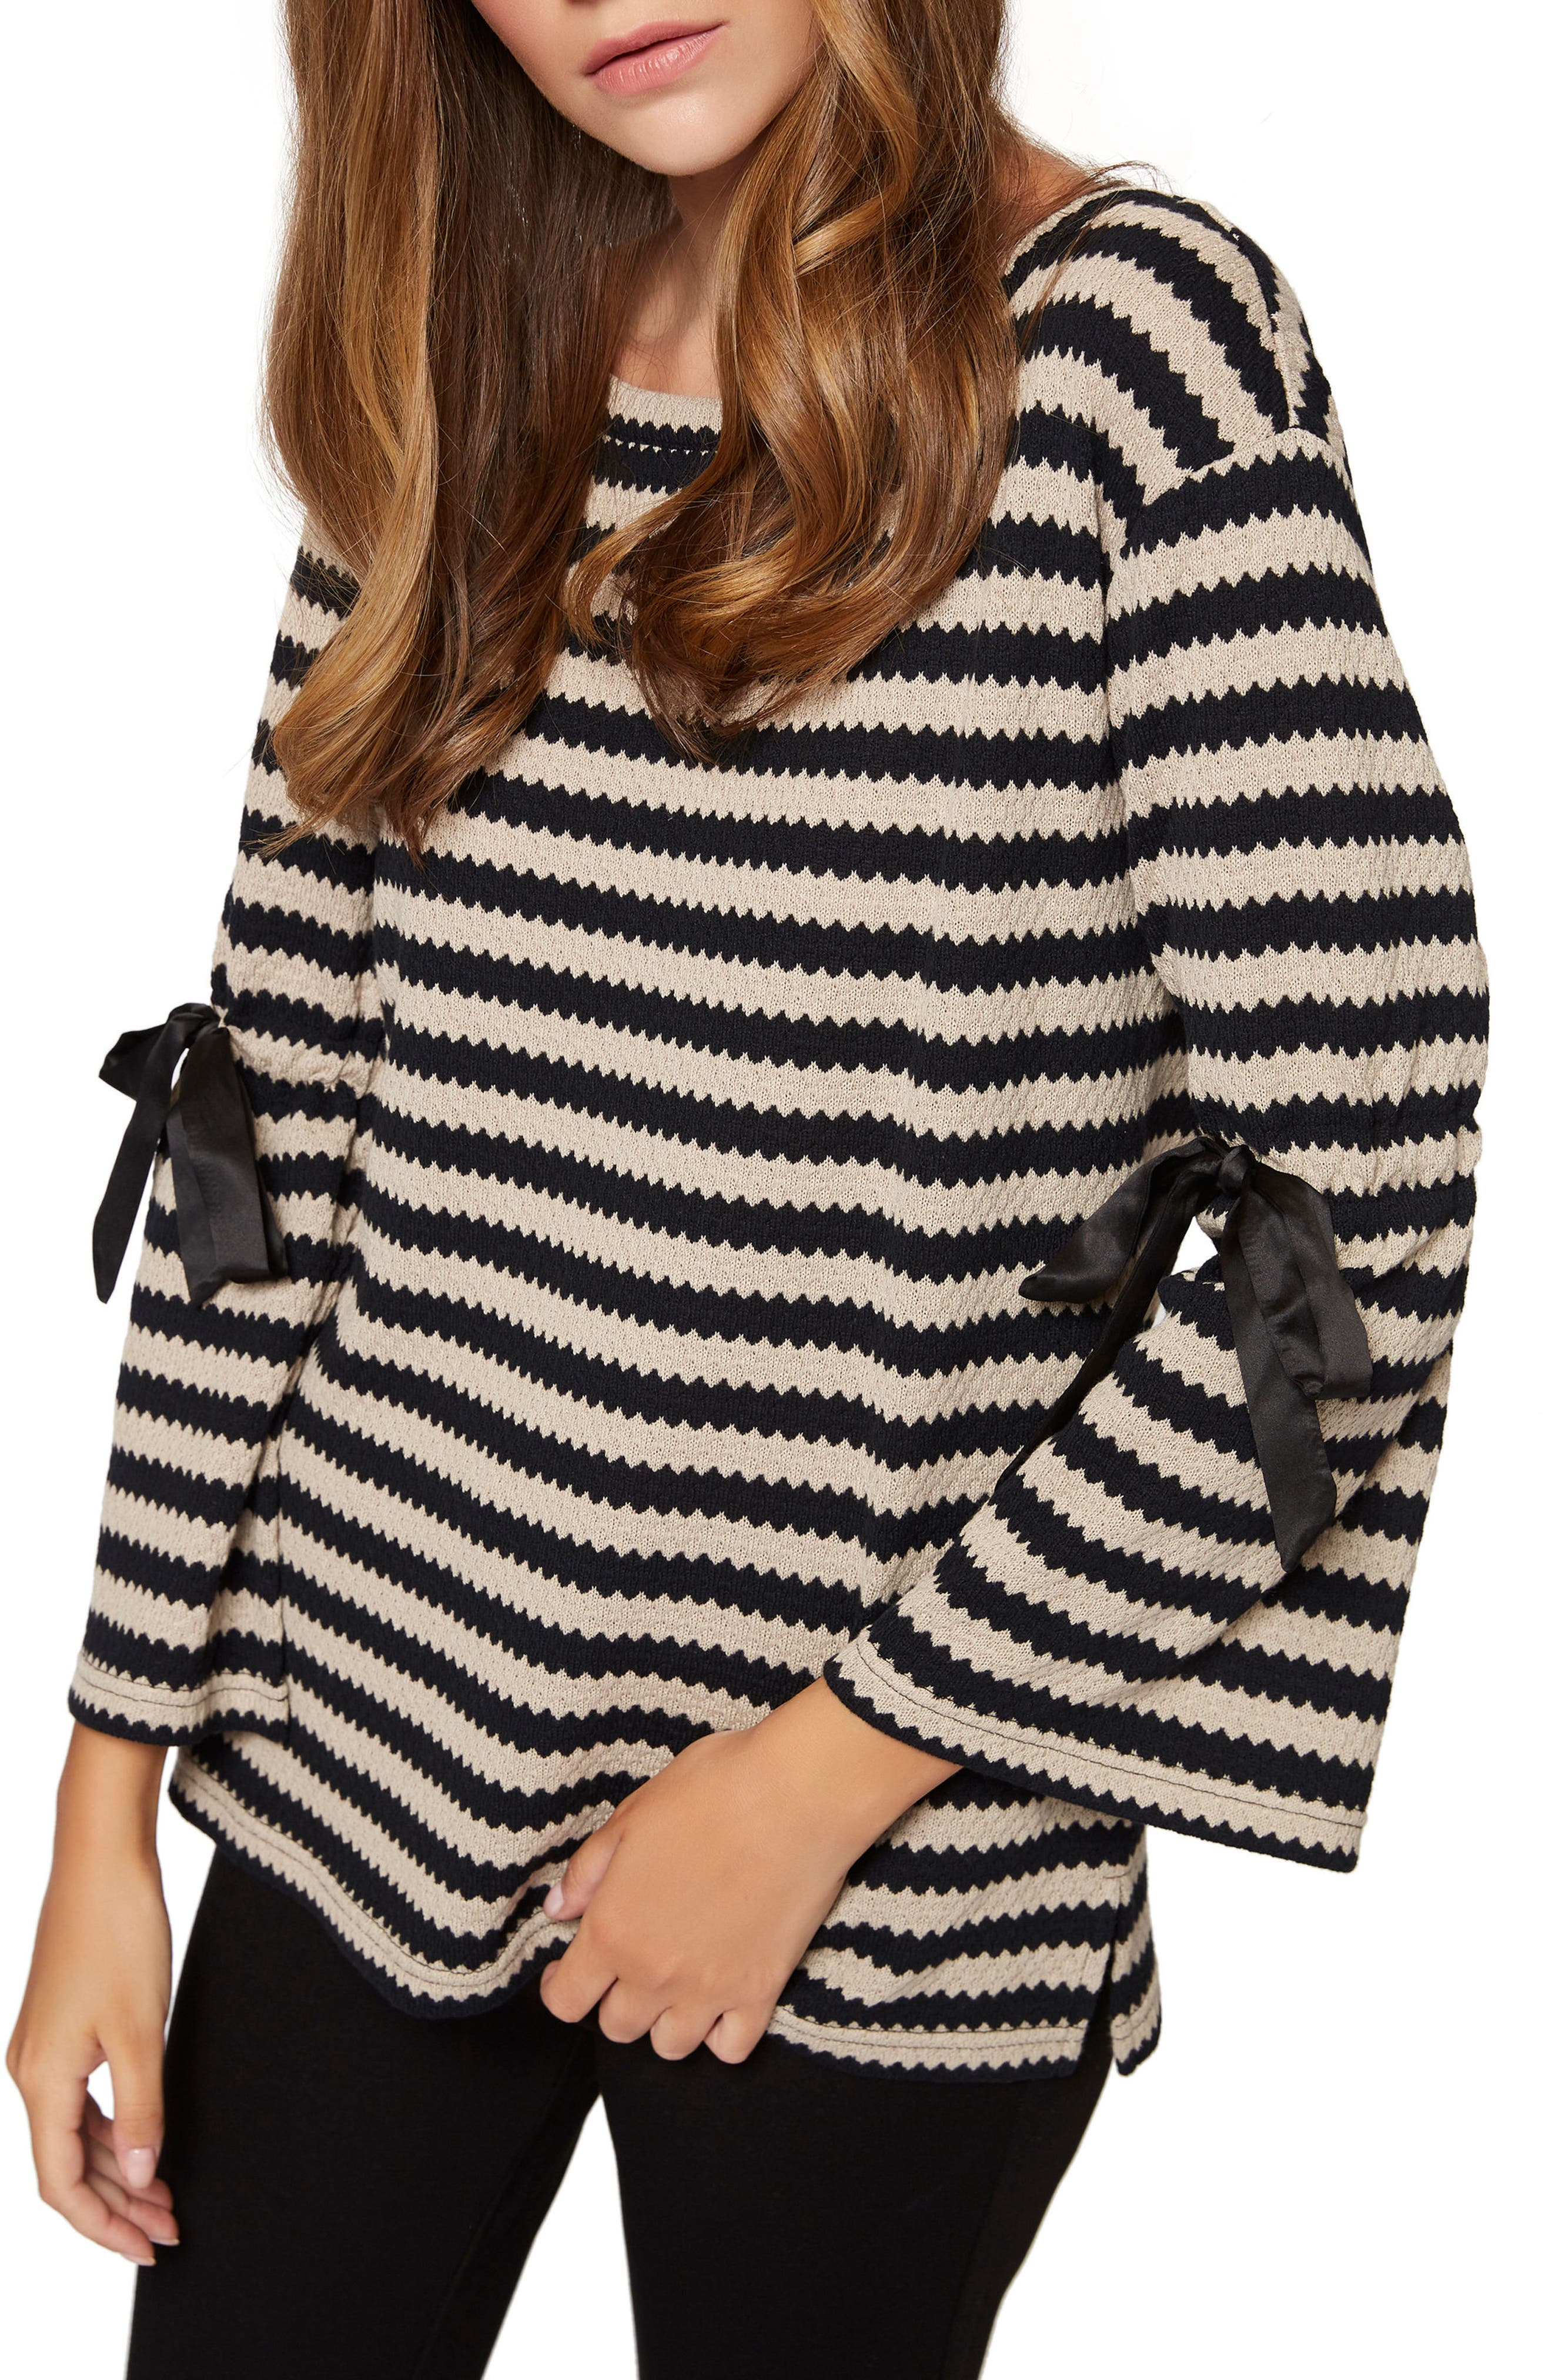 Alternate Image 1 Selected - Sanctuary Tierney Stripe Tie Sleeve Sweatshirt (Regular & Petite)